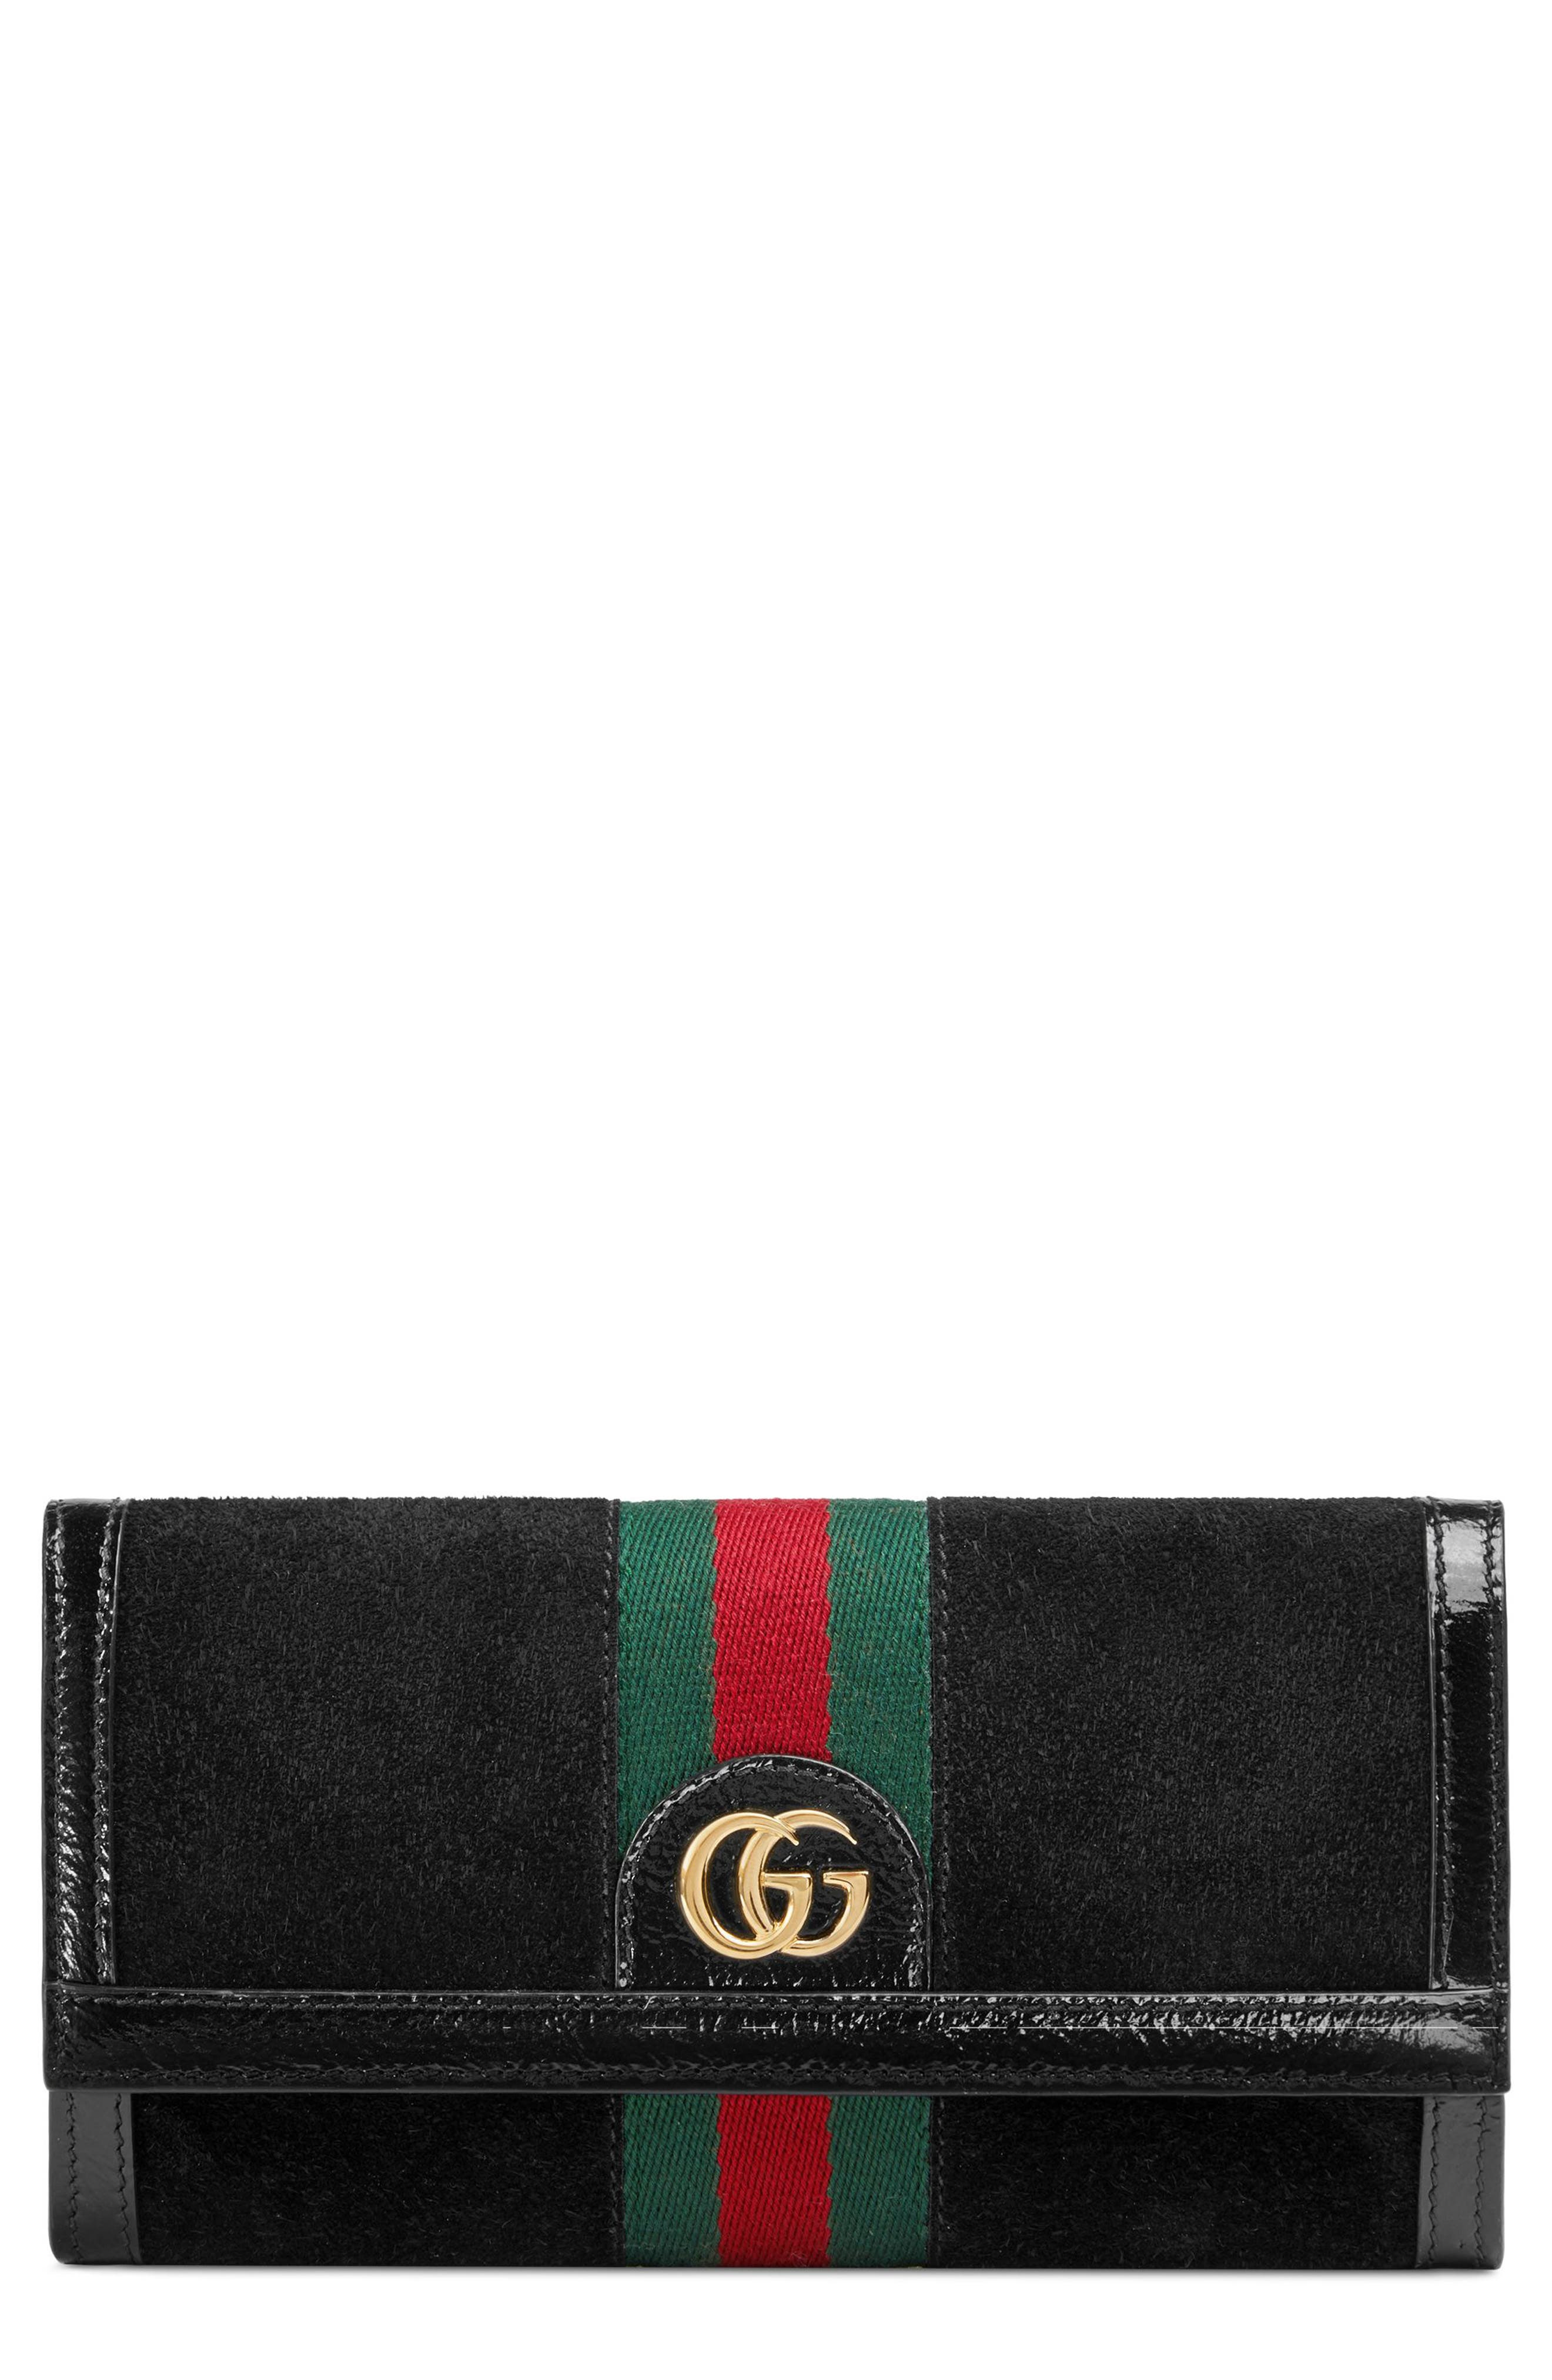 Main Image - Gucci Ophidia Suede Continental Wallet